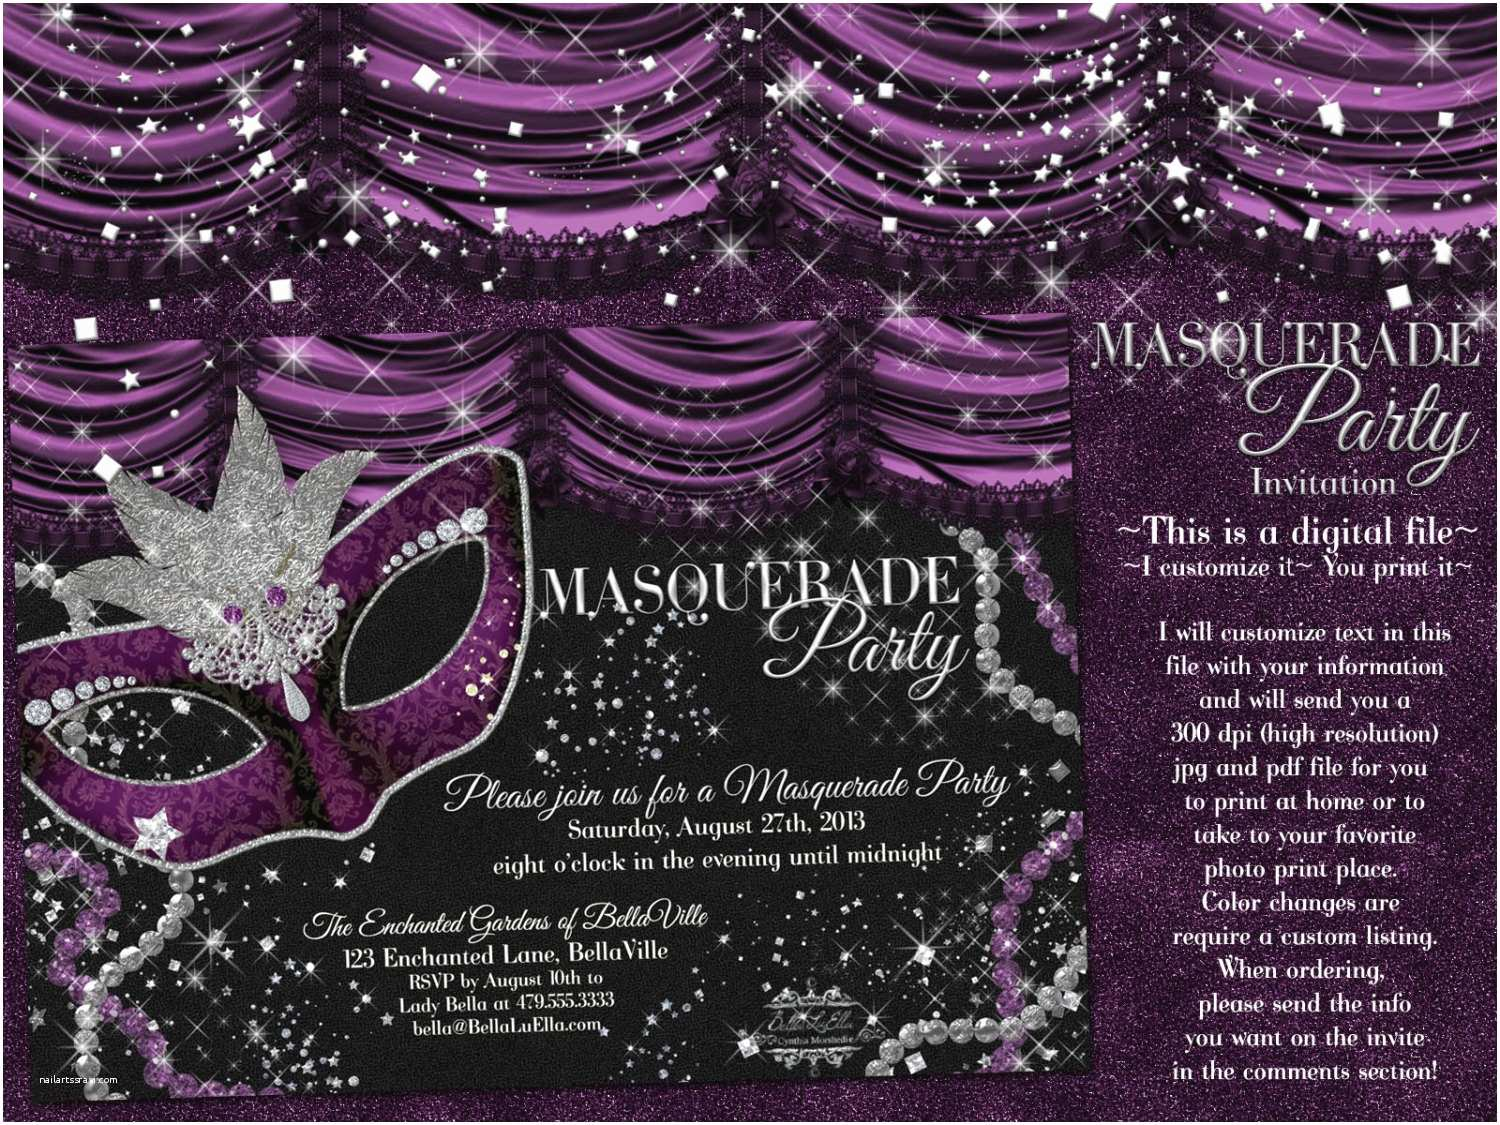 masquerade party invitation mardi gras